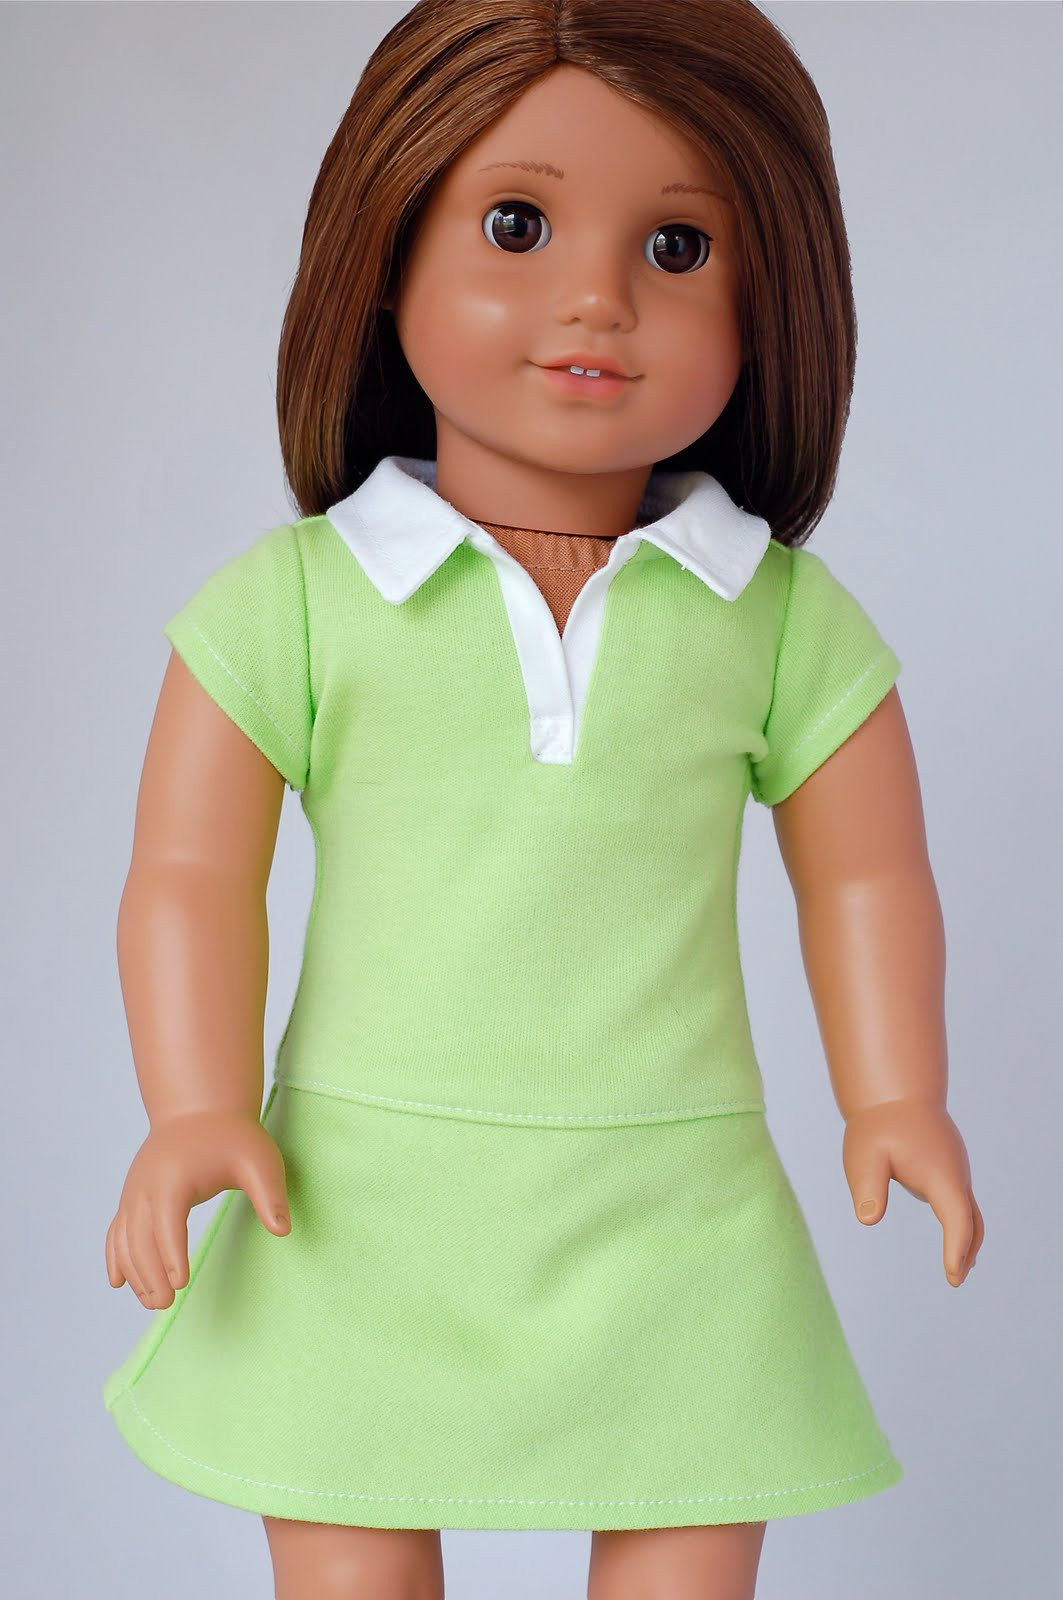 Awesome American Girl Doll Clothes Pattern Polo Shirt Dress American Doll Clothes Patterns Of Superb 48 Ideas American Doll Clothes Patterns